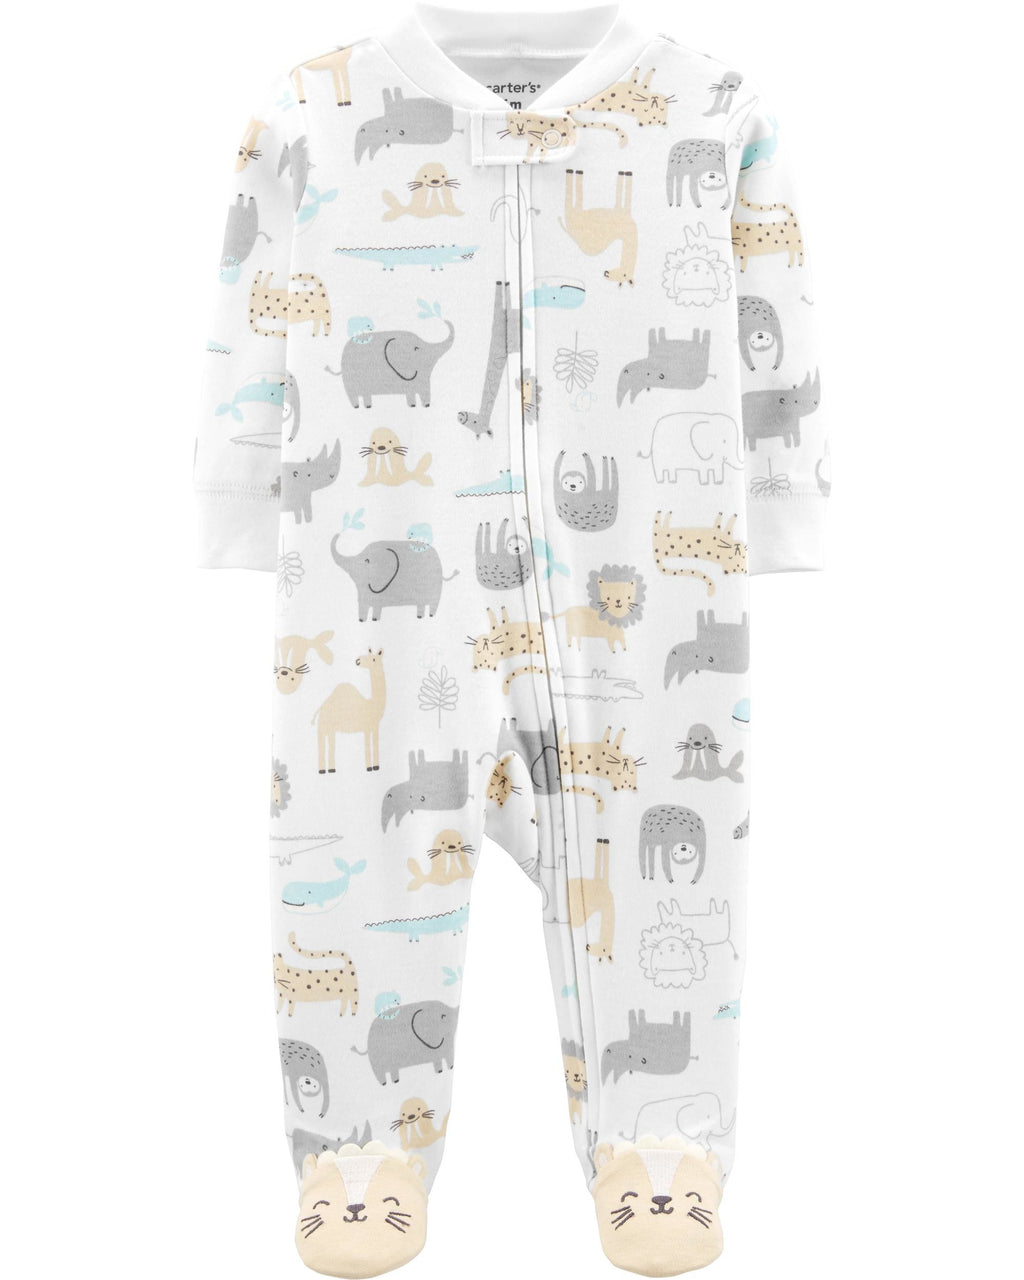 Enterito CARTERS Safari Animal Zip-Up Cotton Sleep & Play